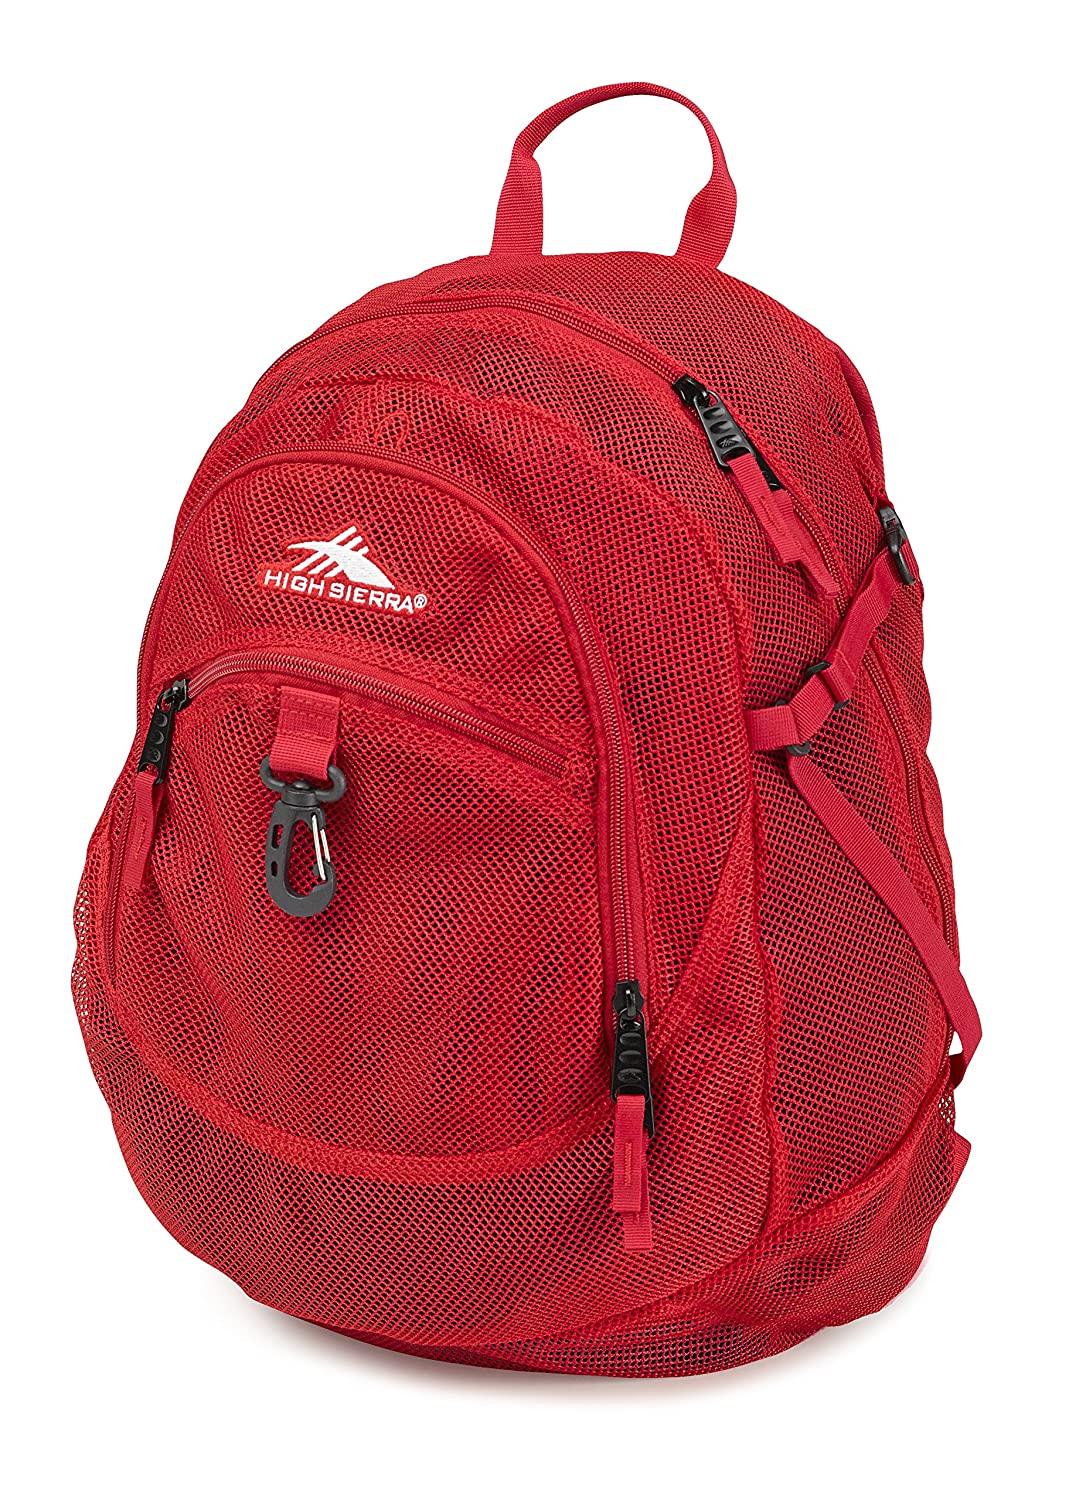 High Sierra Airhead Mesh Backpack Black 53638-1041